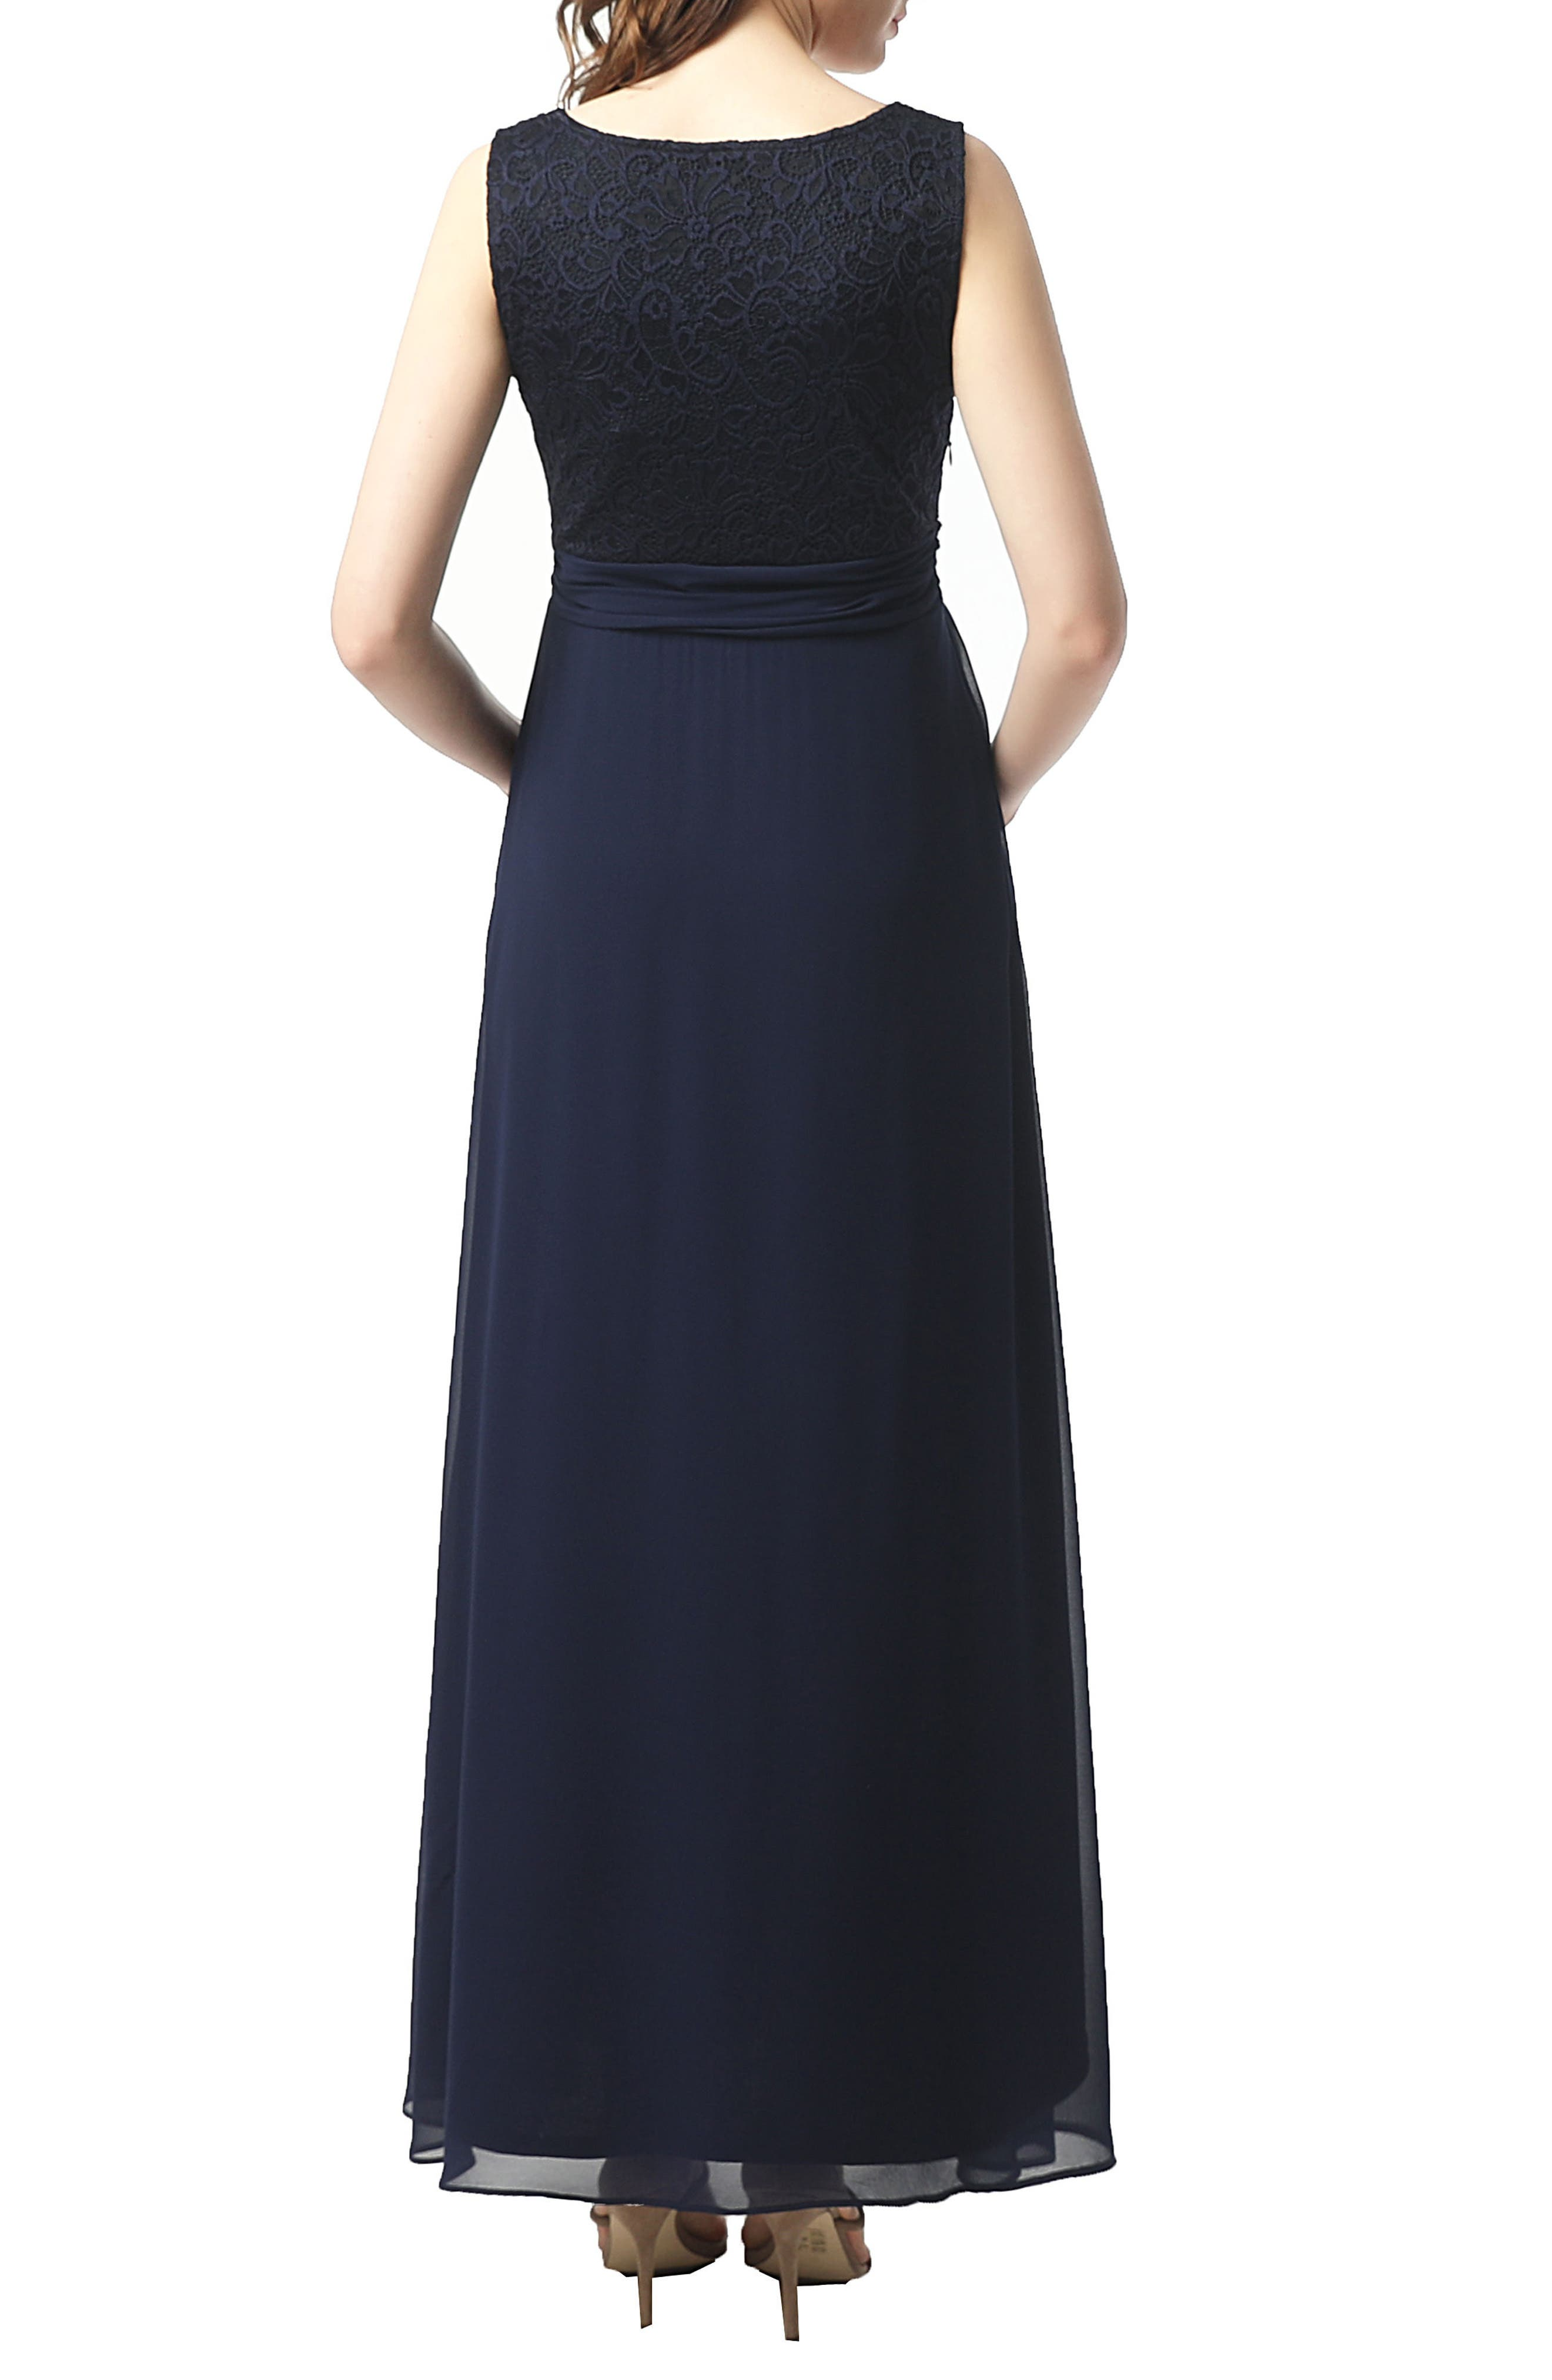 Kyra Maternity Maxi Dress,                             Alternate thumbnail 2, color,                             Navy